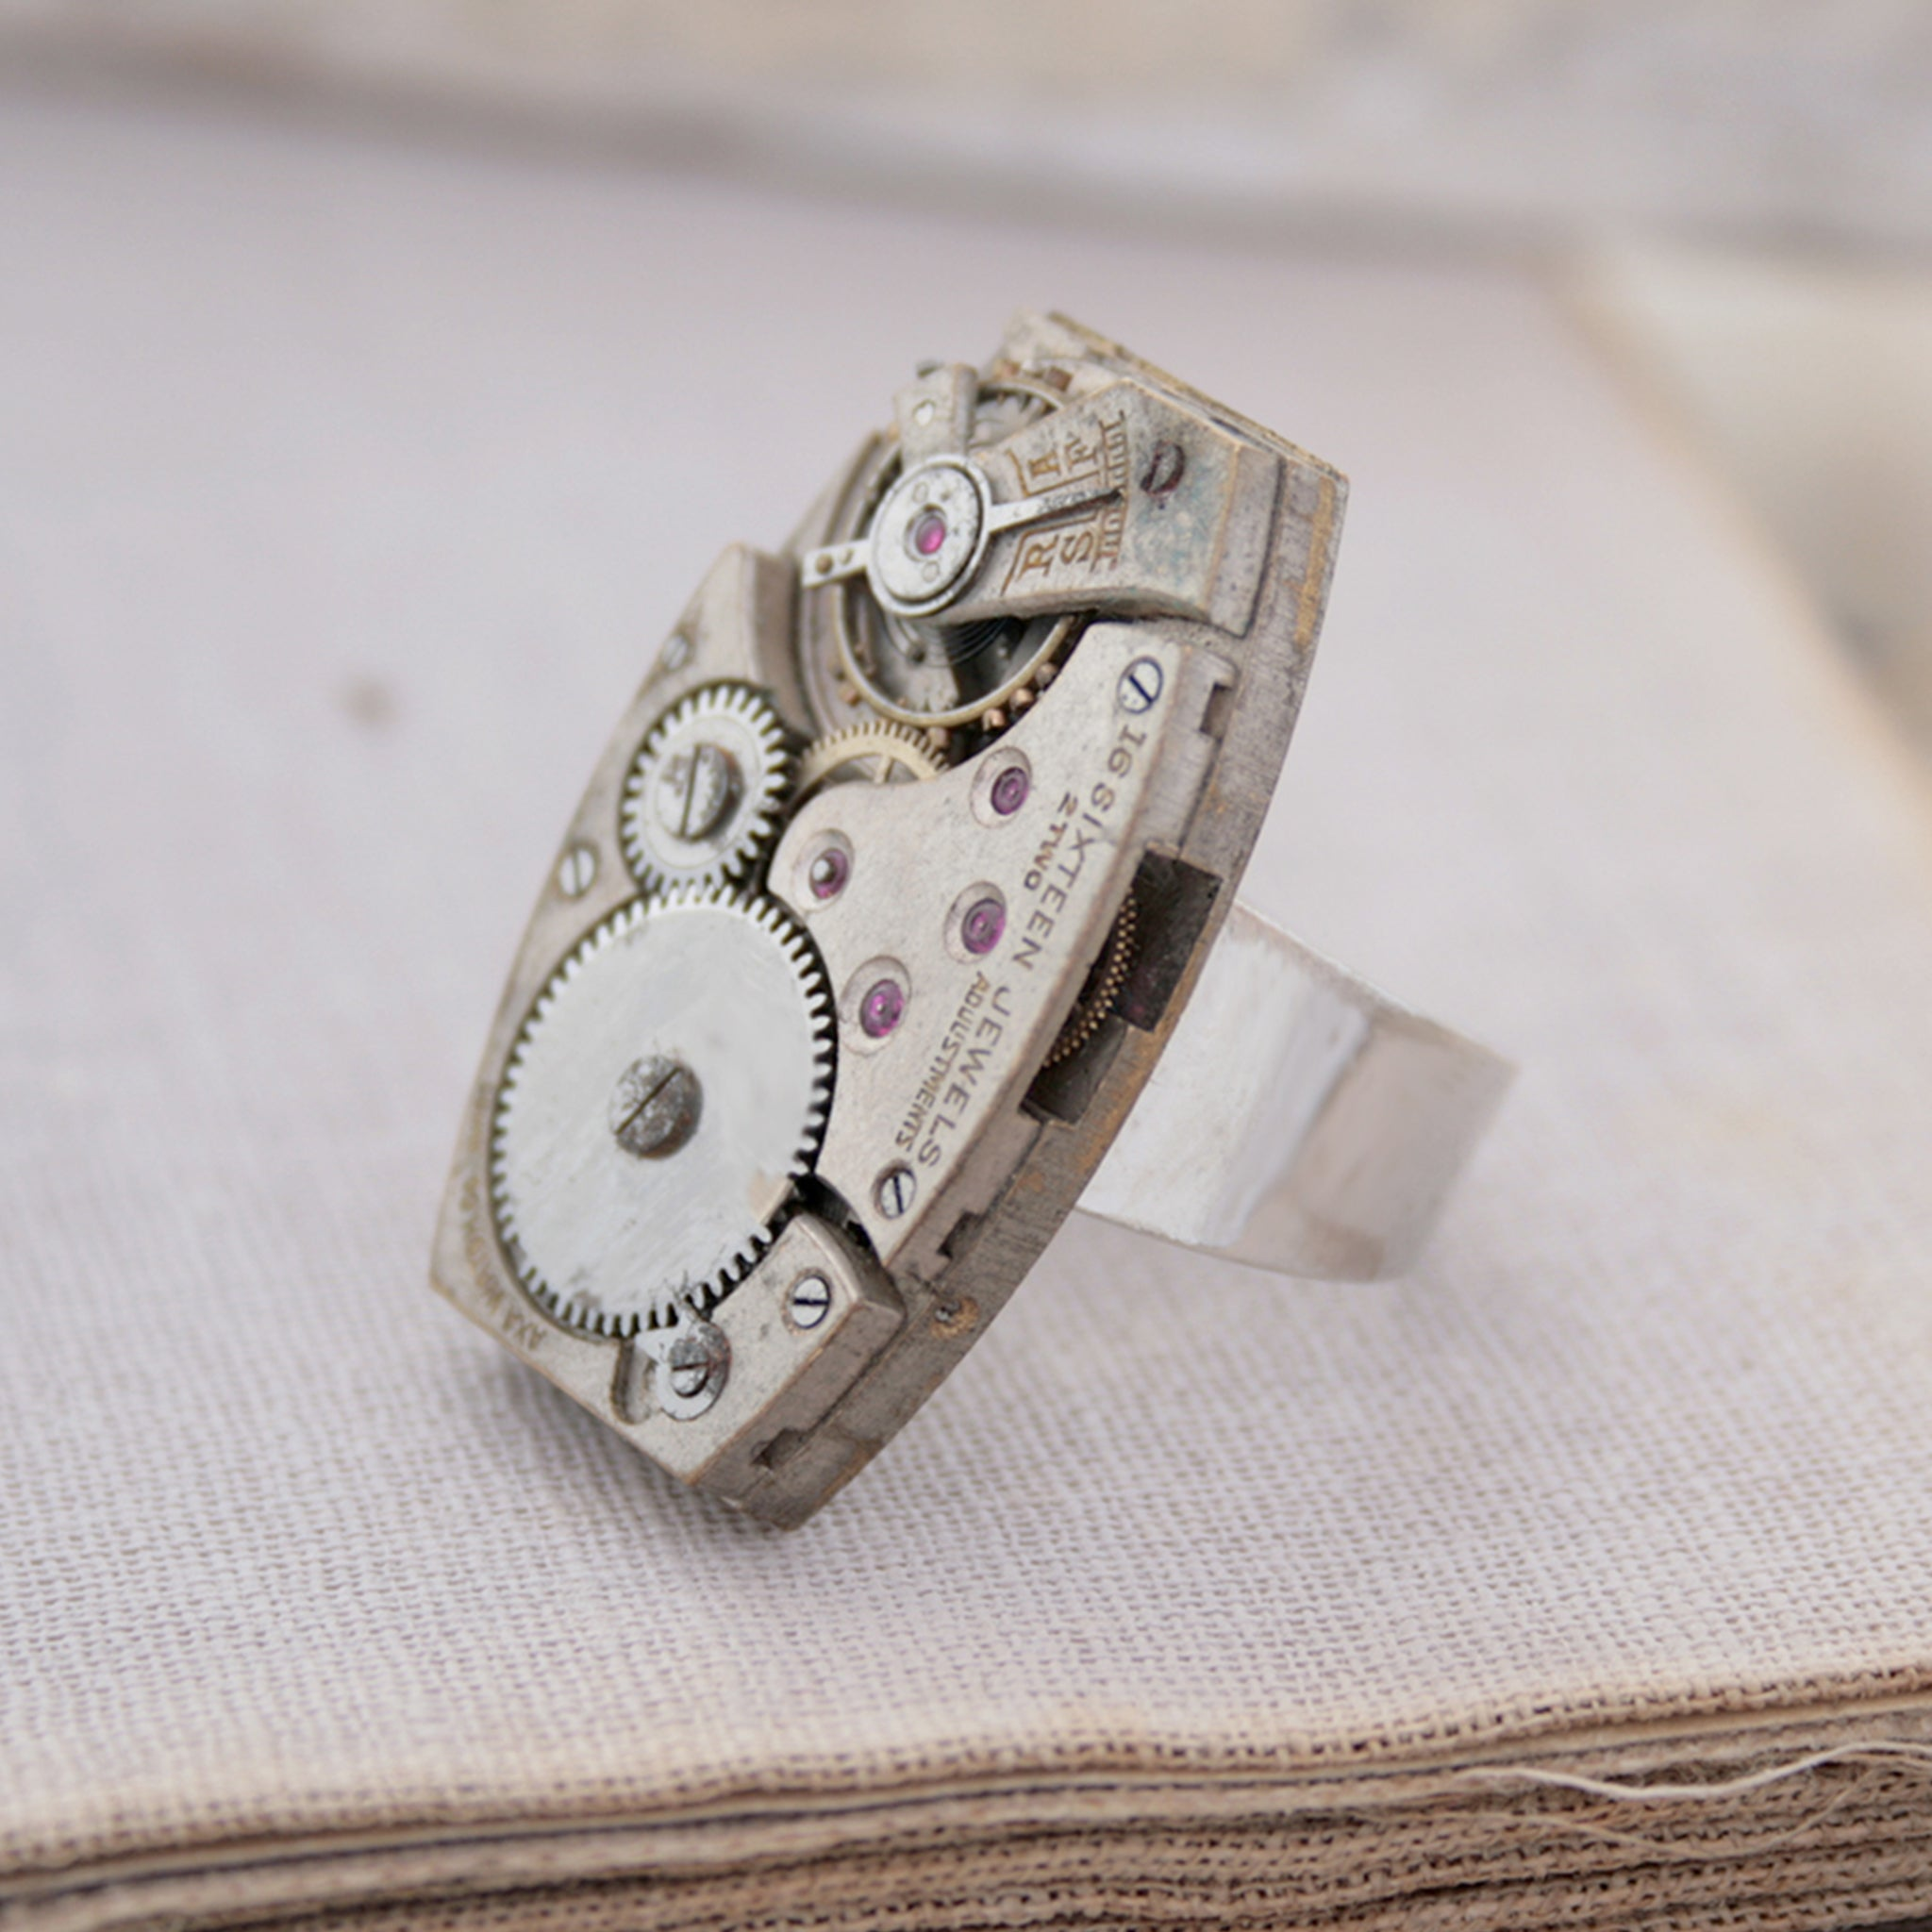 Steampunk Cocktail Ring made of vintage watch movement